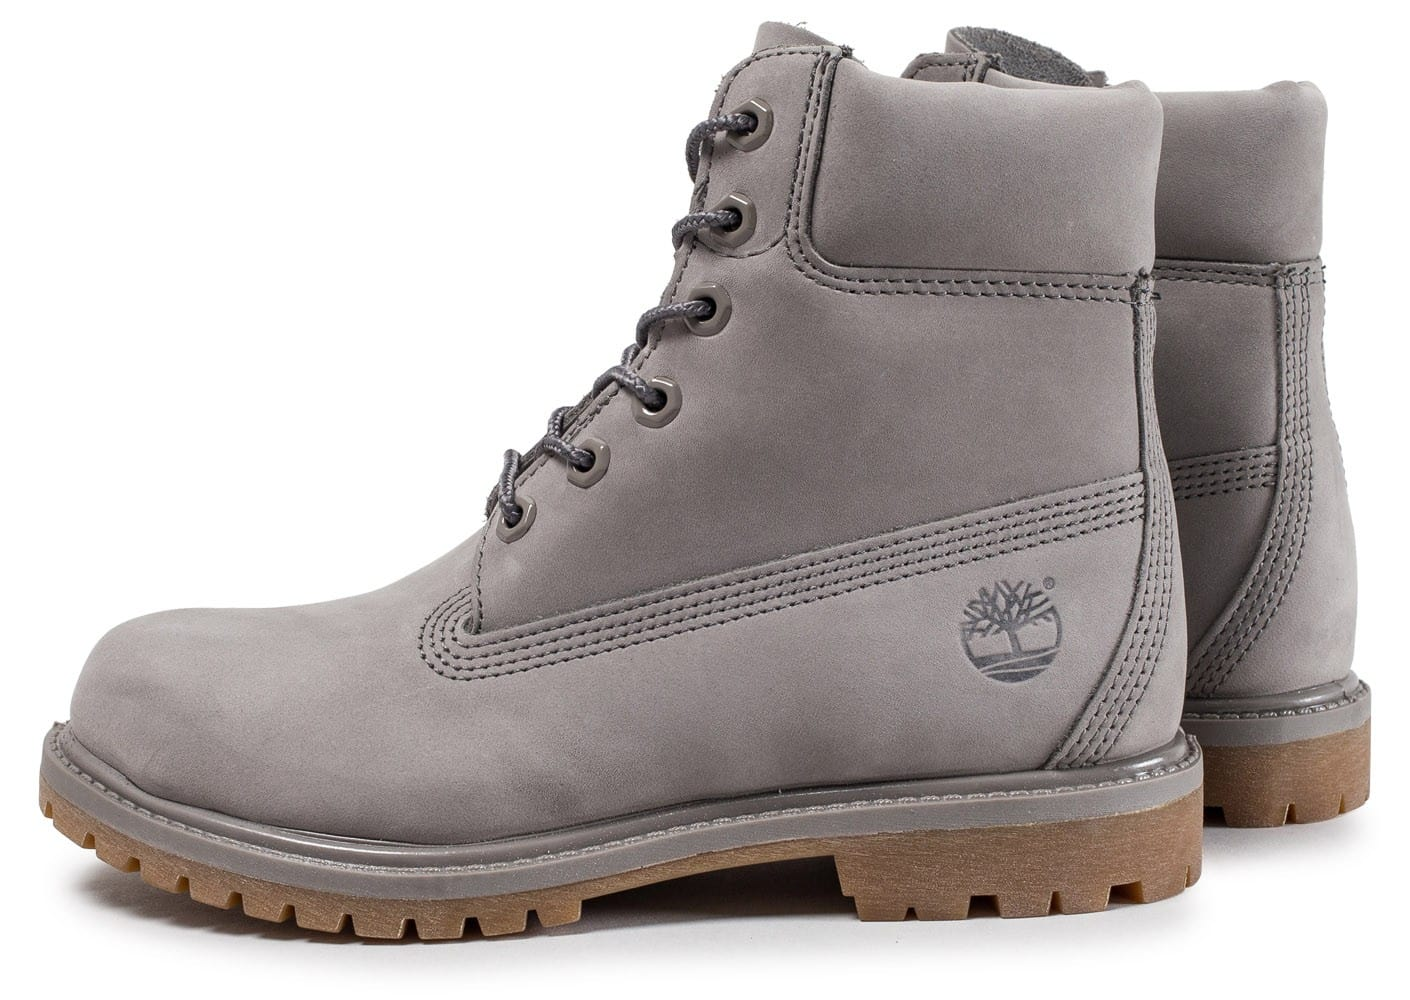 timberland 6 inch premium boots grise chaussures femme. Black Bedroom Furniture Sets. Home Design Ideas